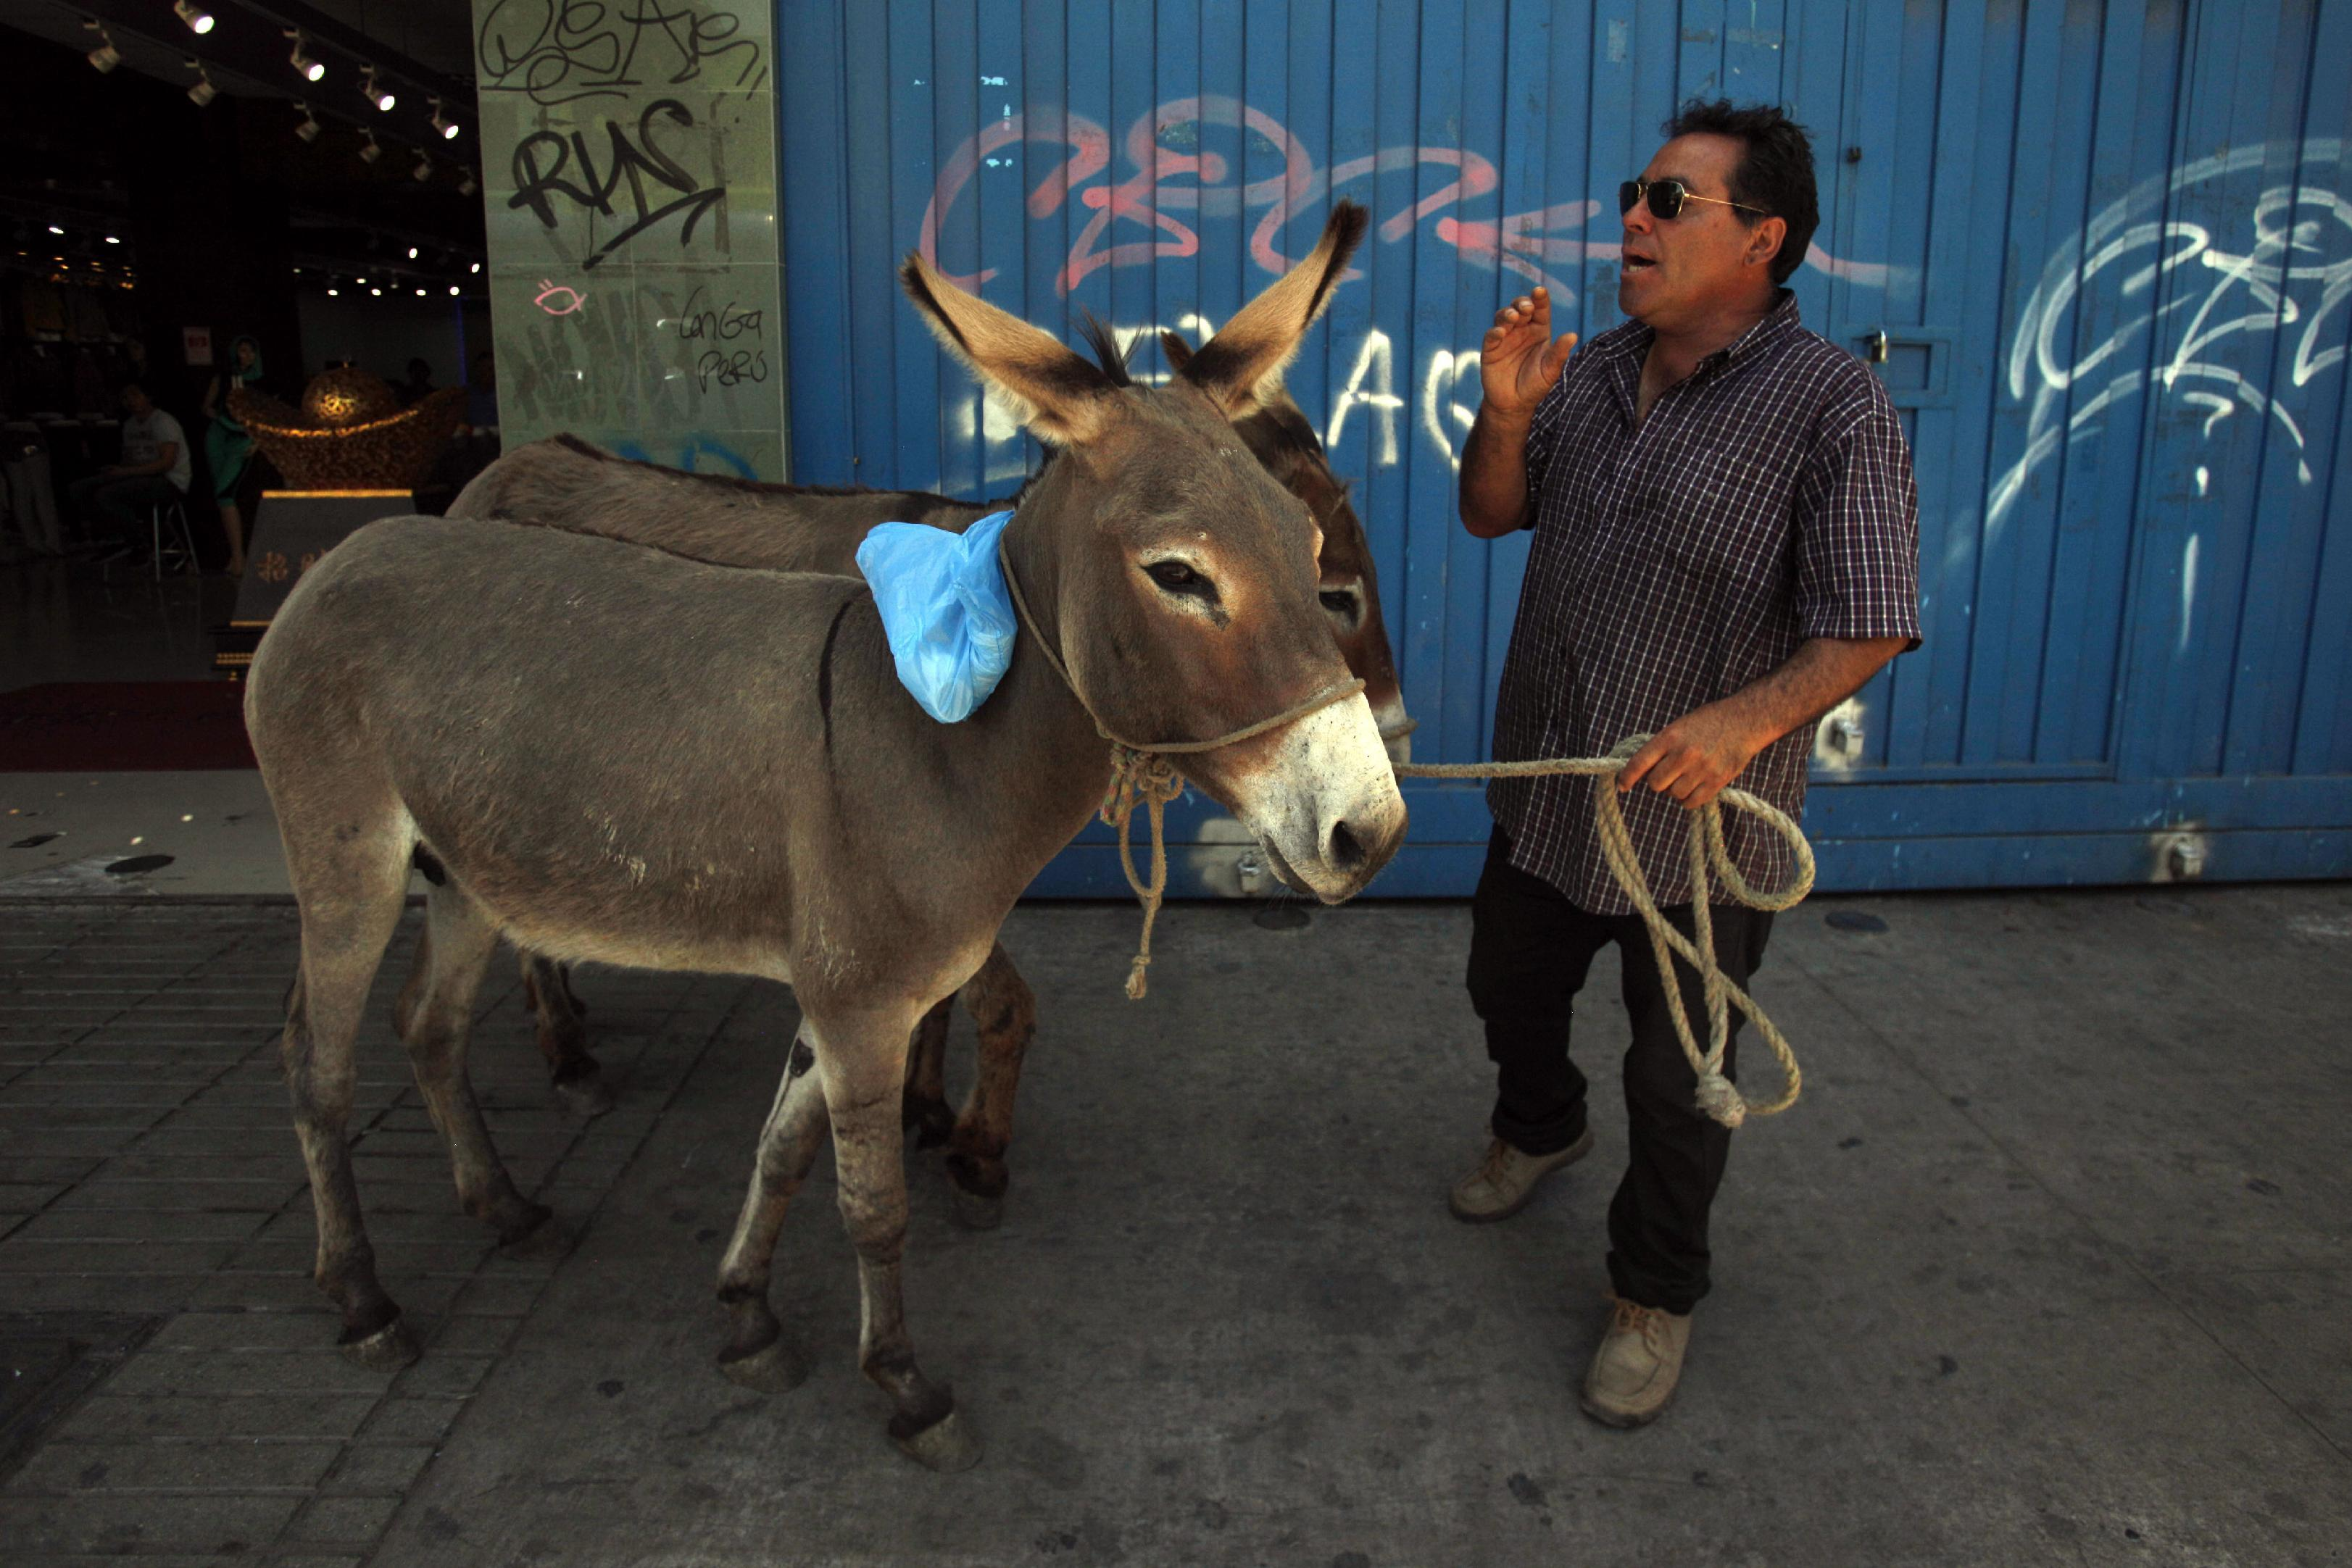 AP PHOTOS: Fresh donkey milk for sale on streets of Chile